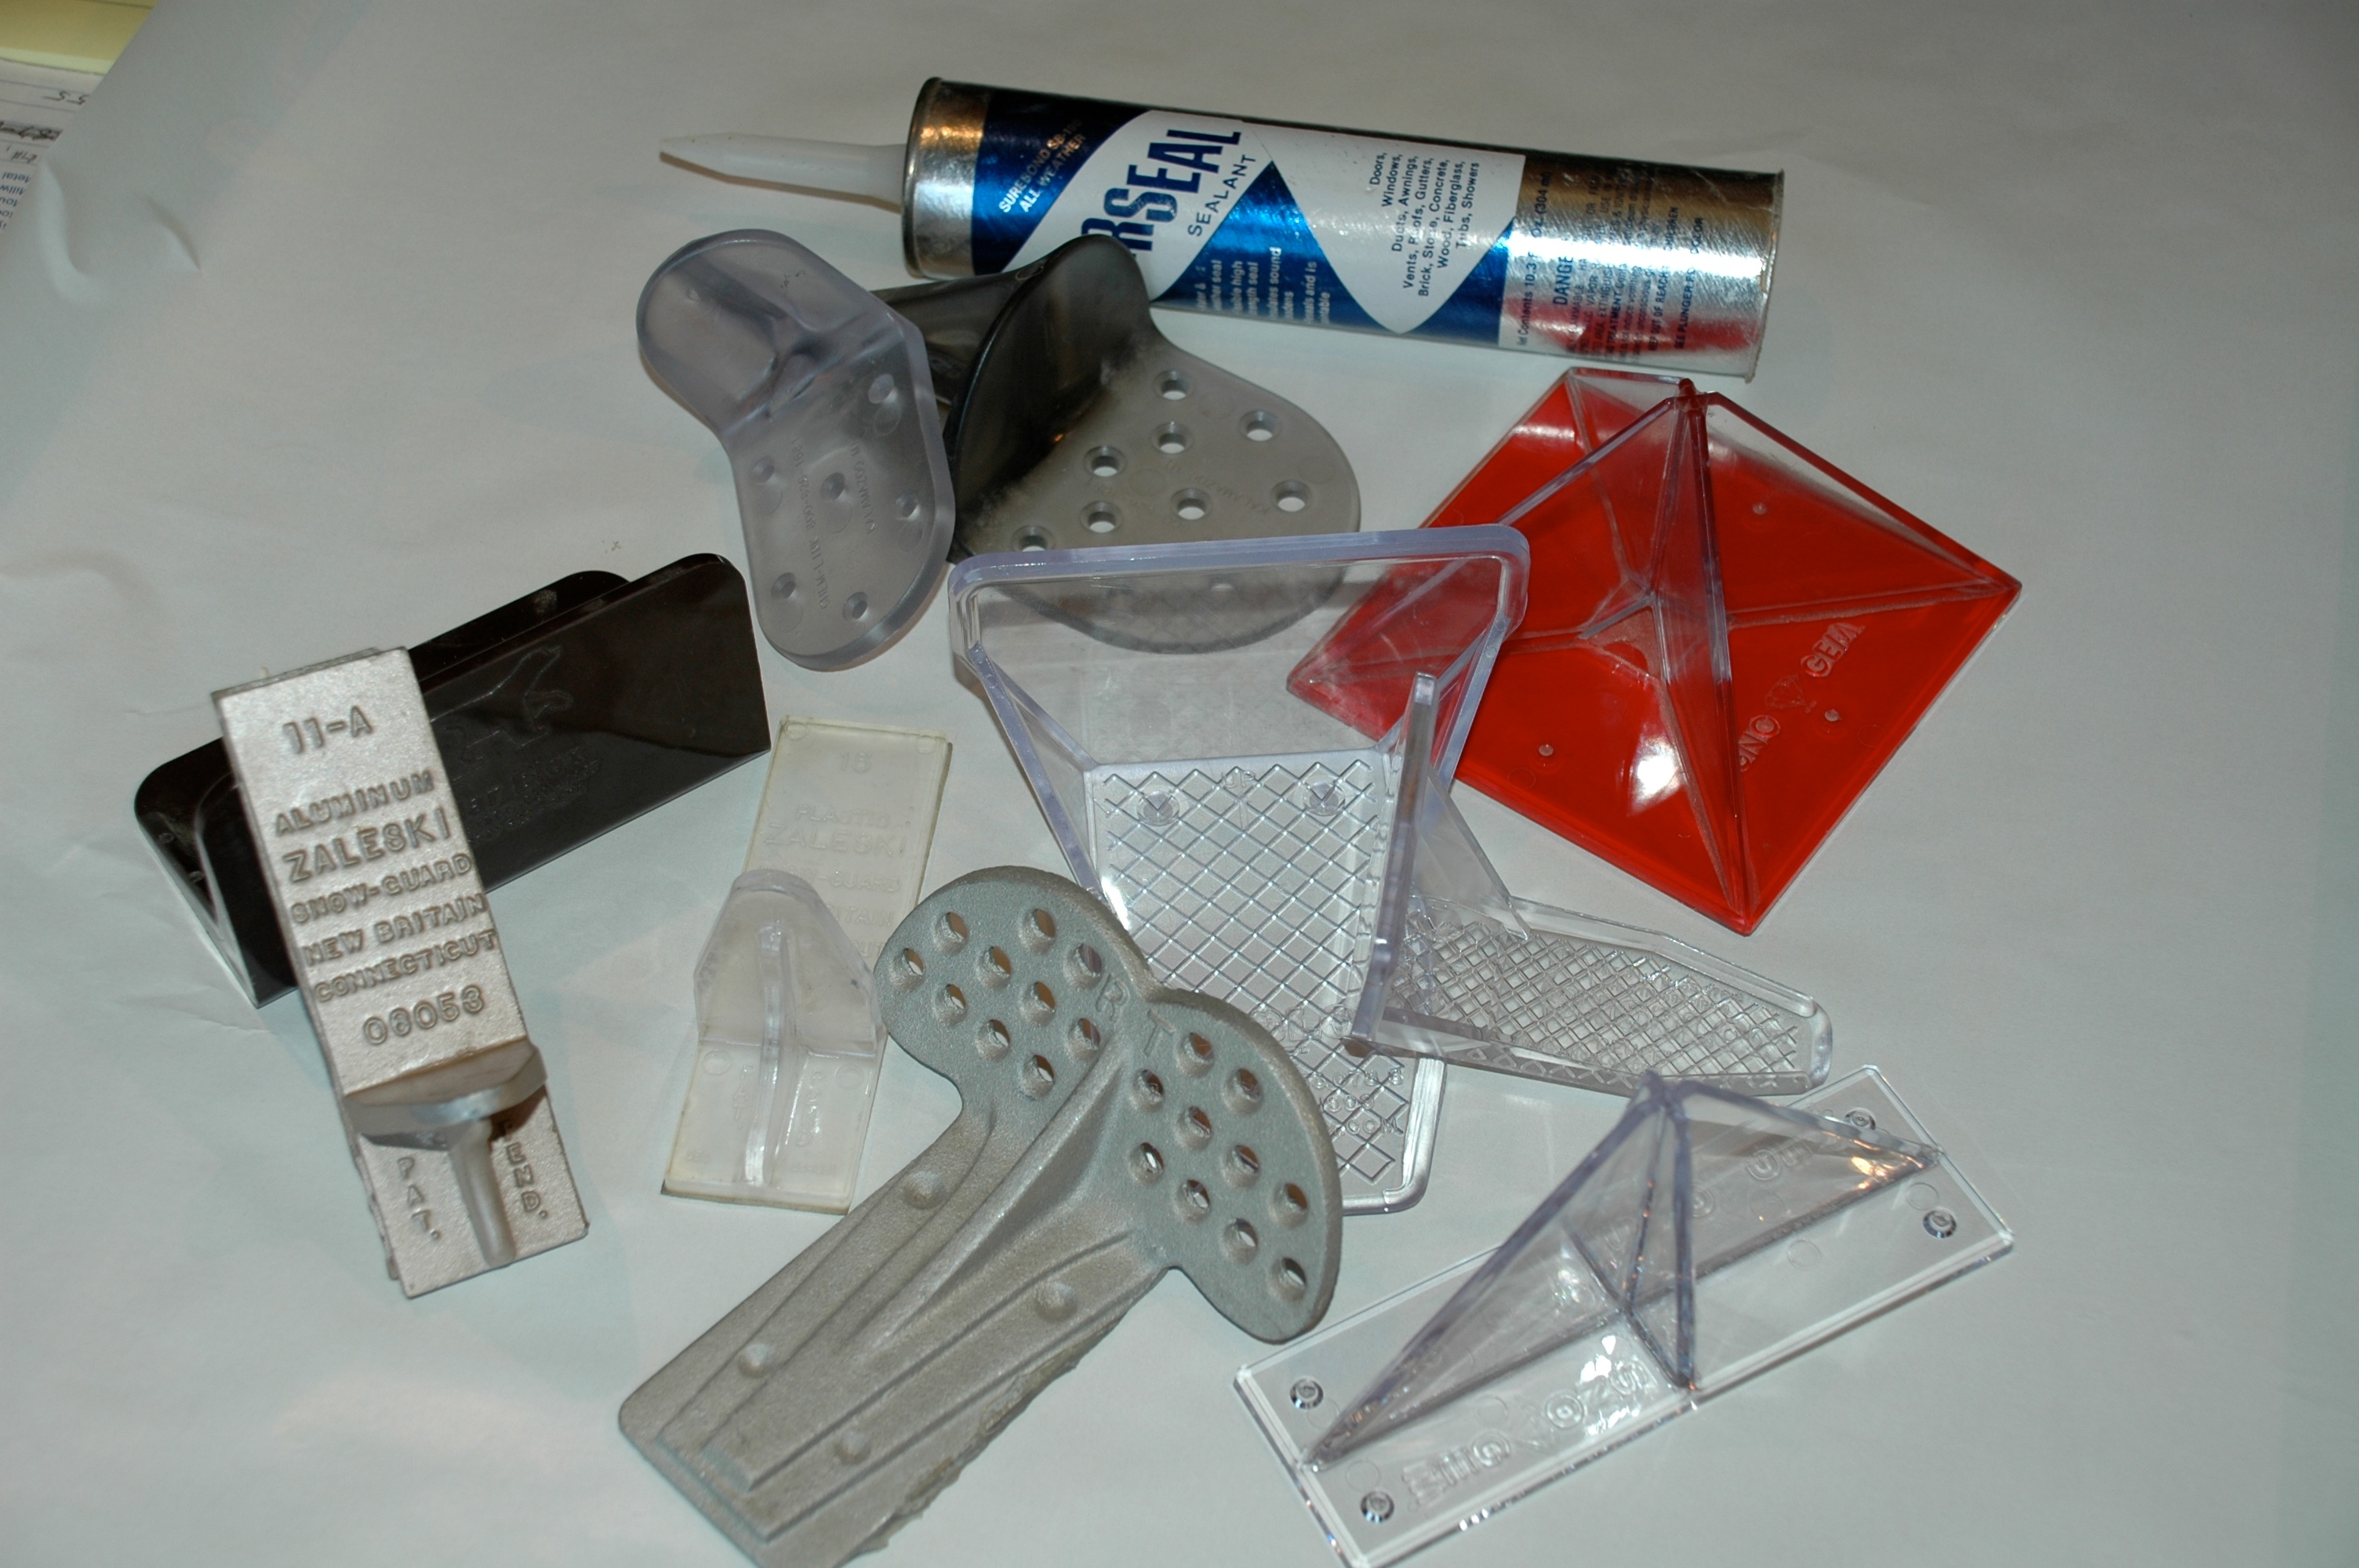 Glue-on snow guards and adhesive